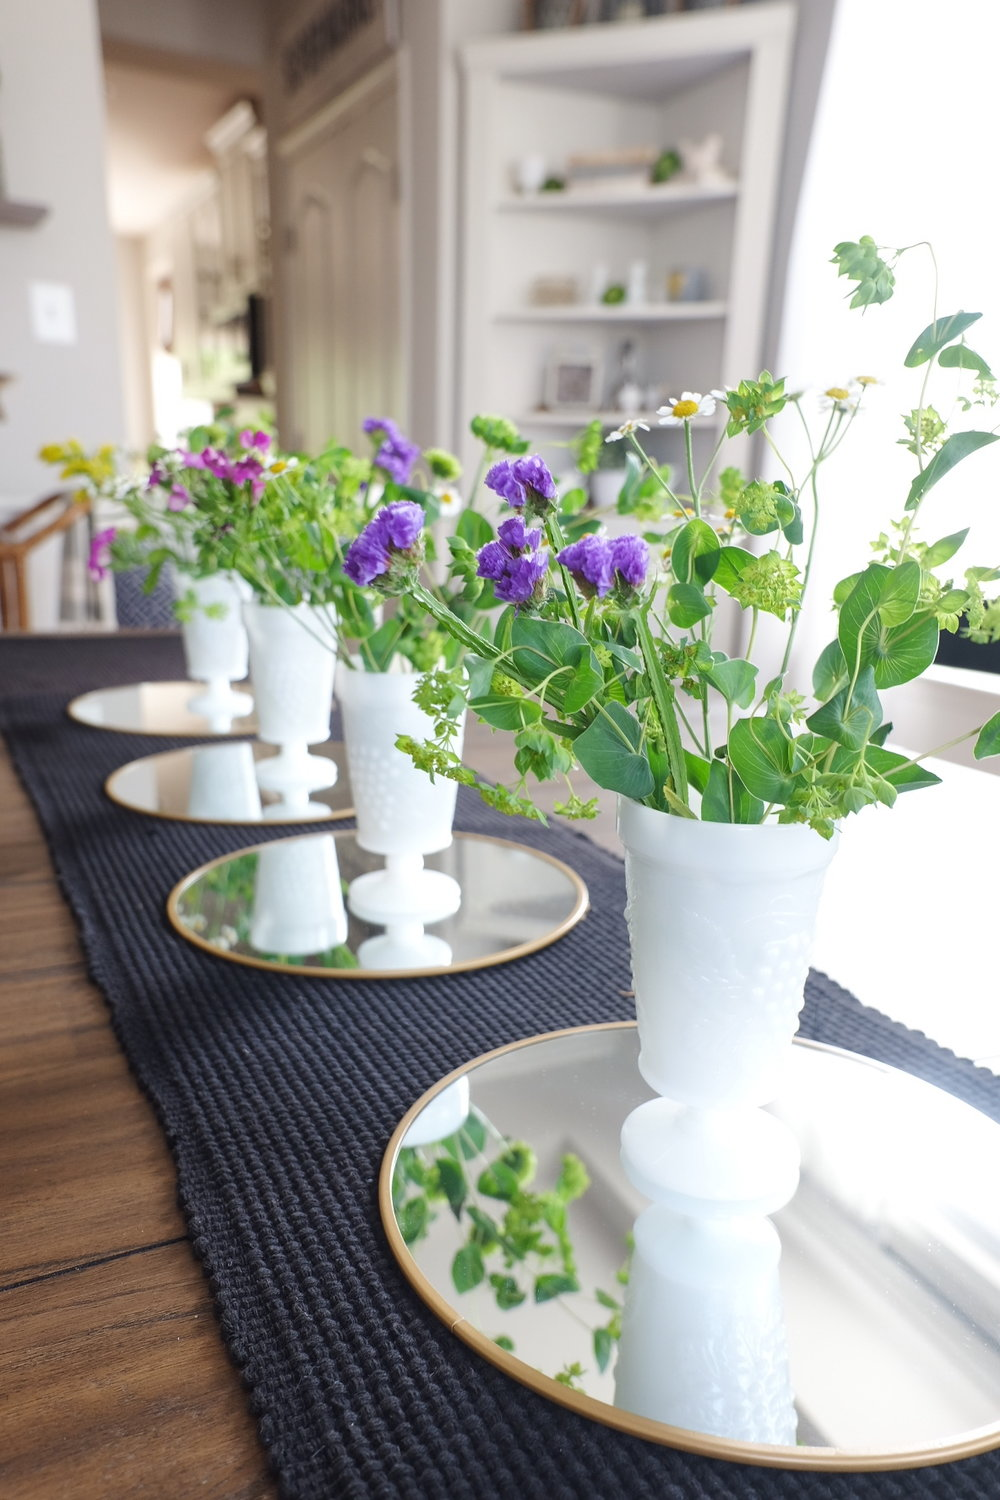 Placing mirrors underneath your jars of Spring flowers make a great centerpiece!